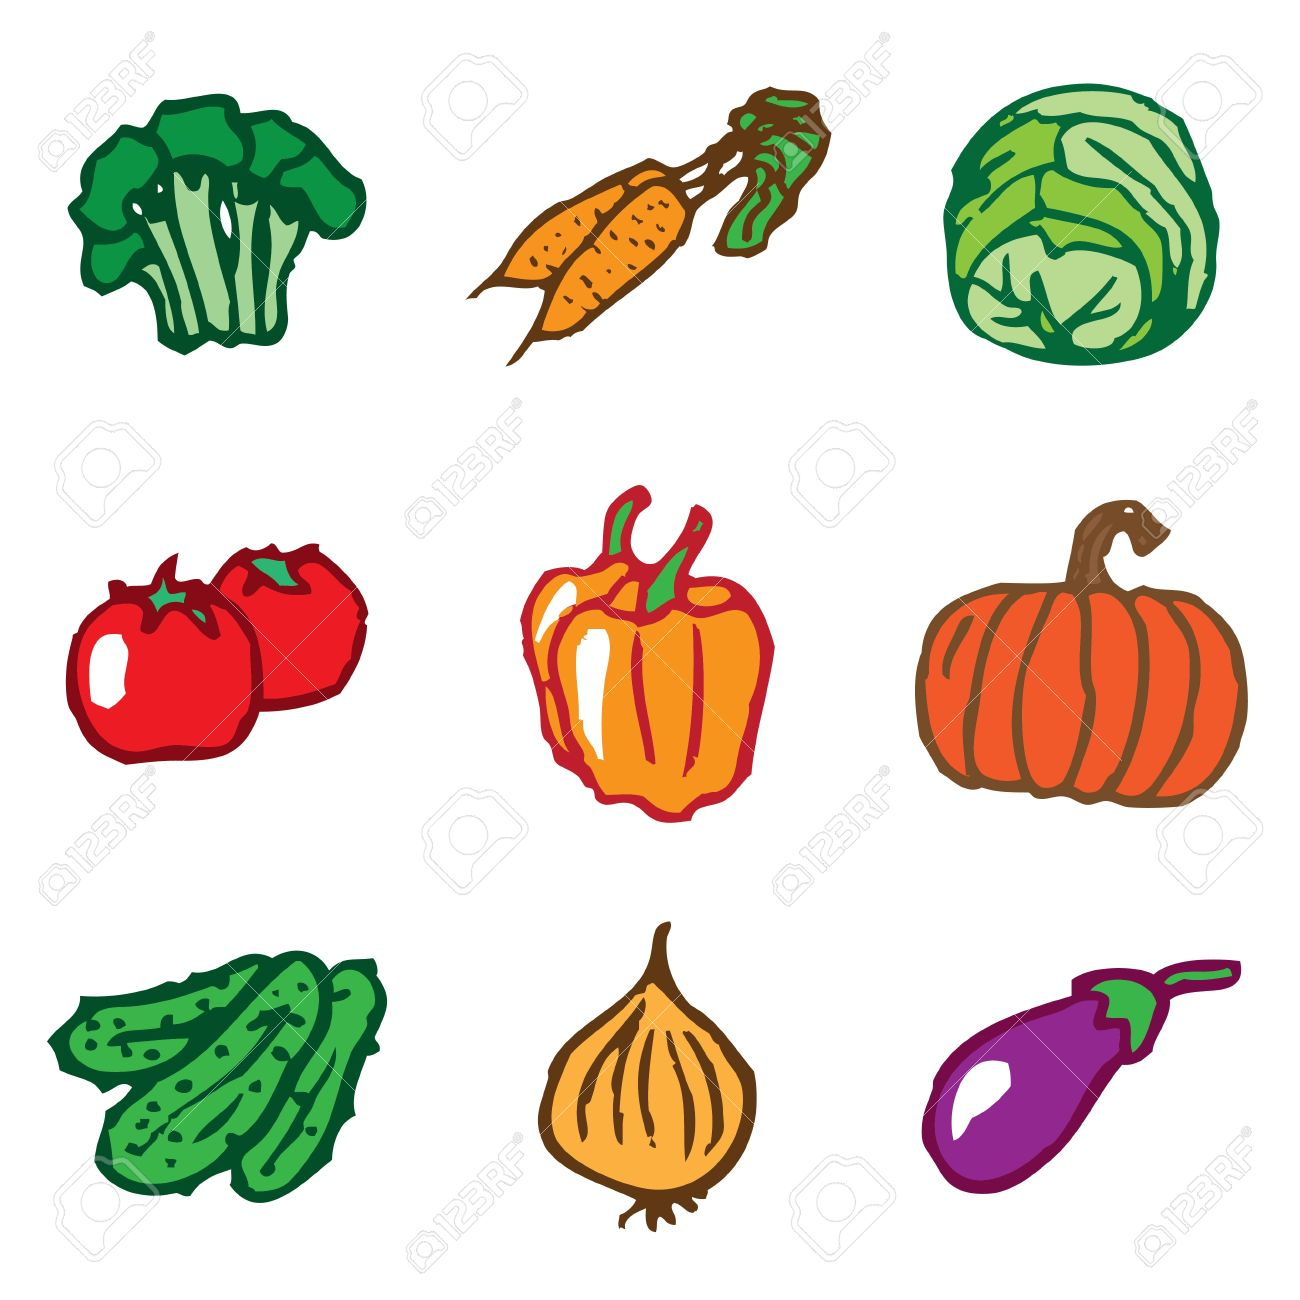 vegetables hand drawn icons in vector Stock Vector - 16270852